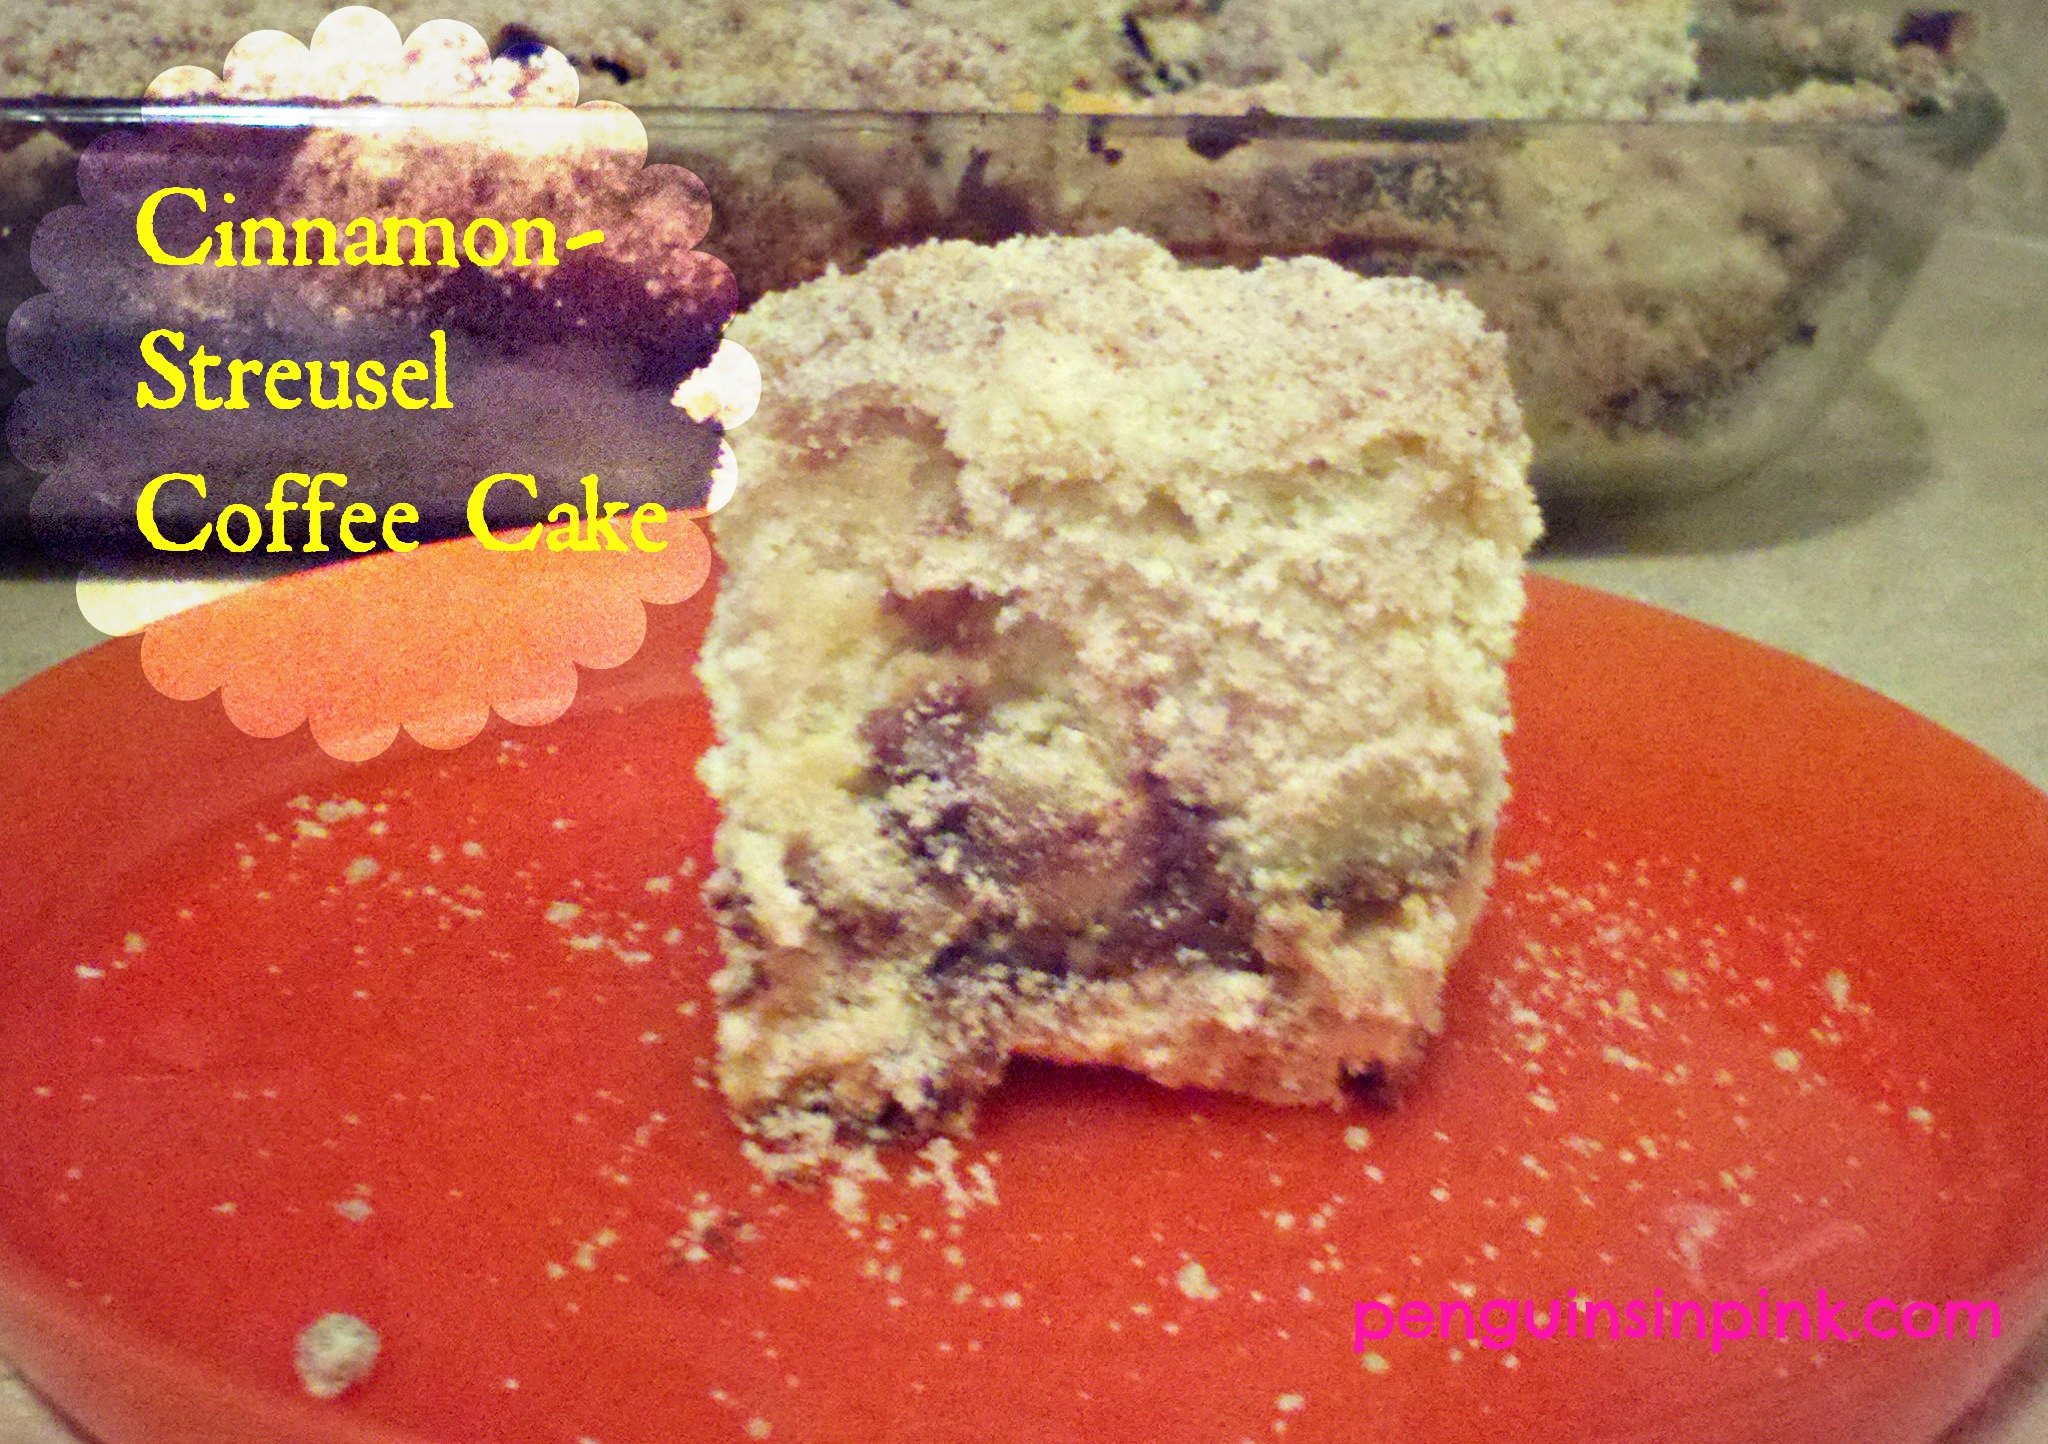 Cinnamon-Streusel Coffee Cake.  A delectable homemade coffee cake.